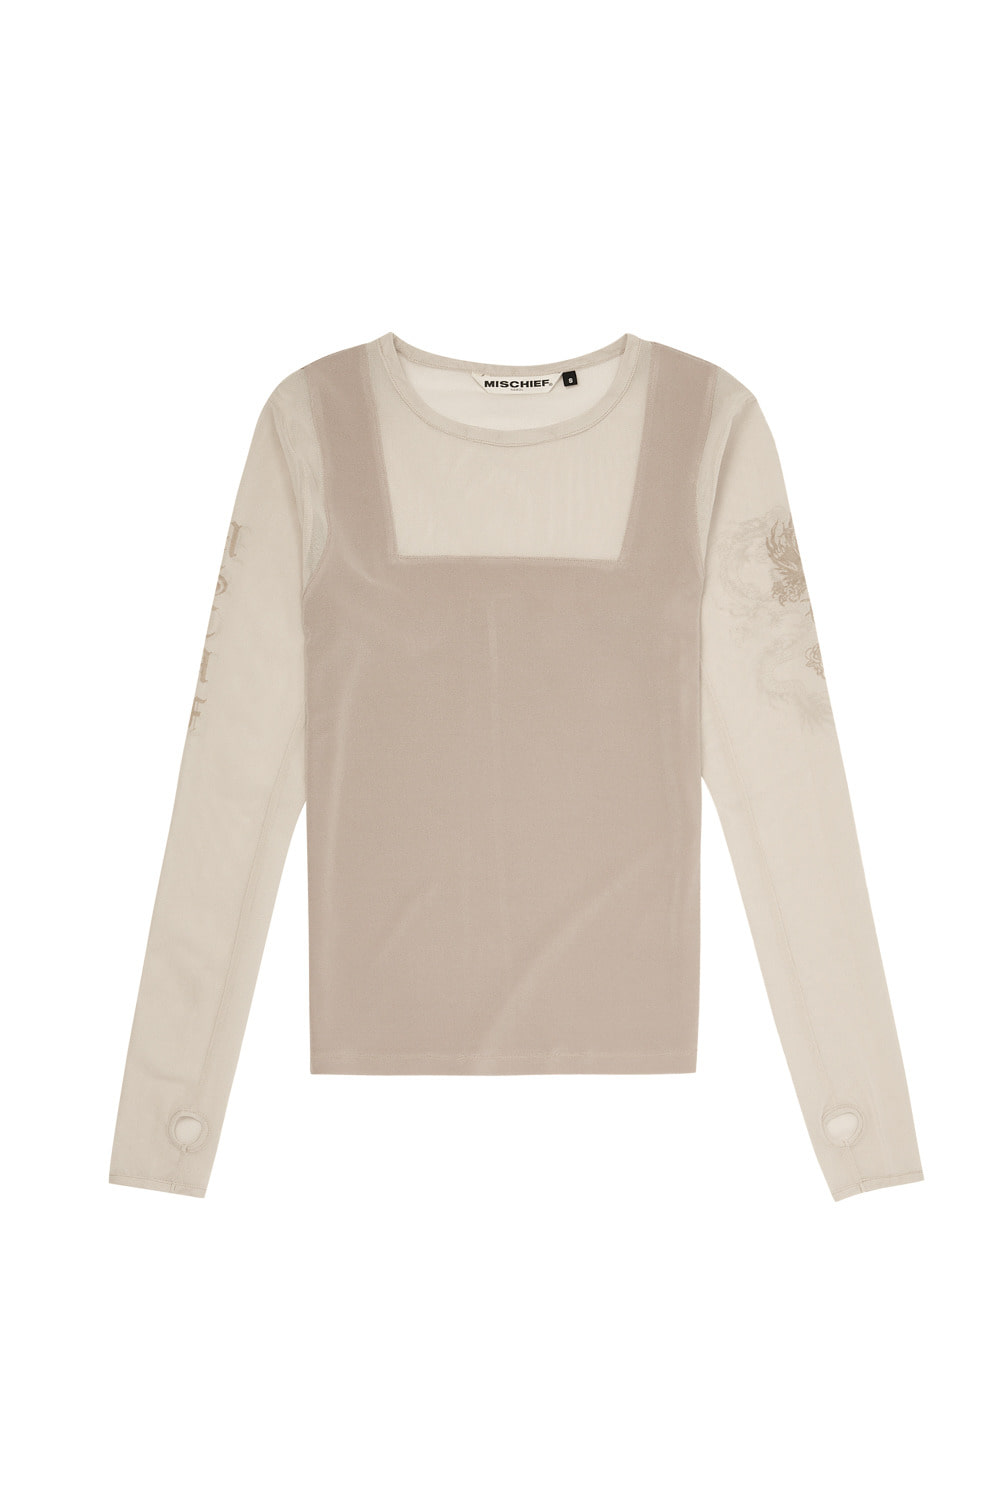 MESH PATCHWORK FITTED LONG SLEEVE_beige